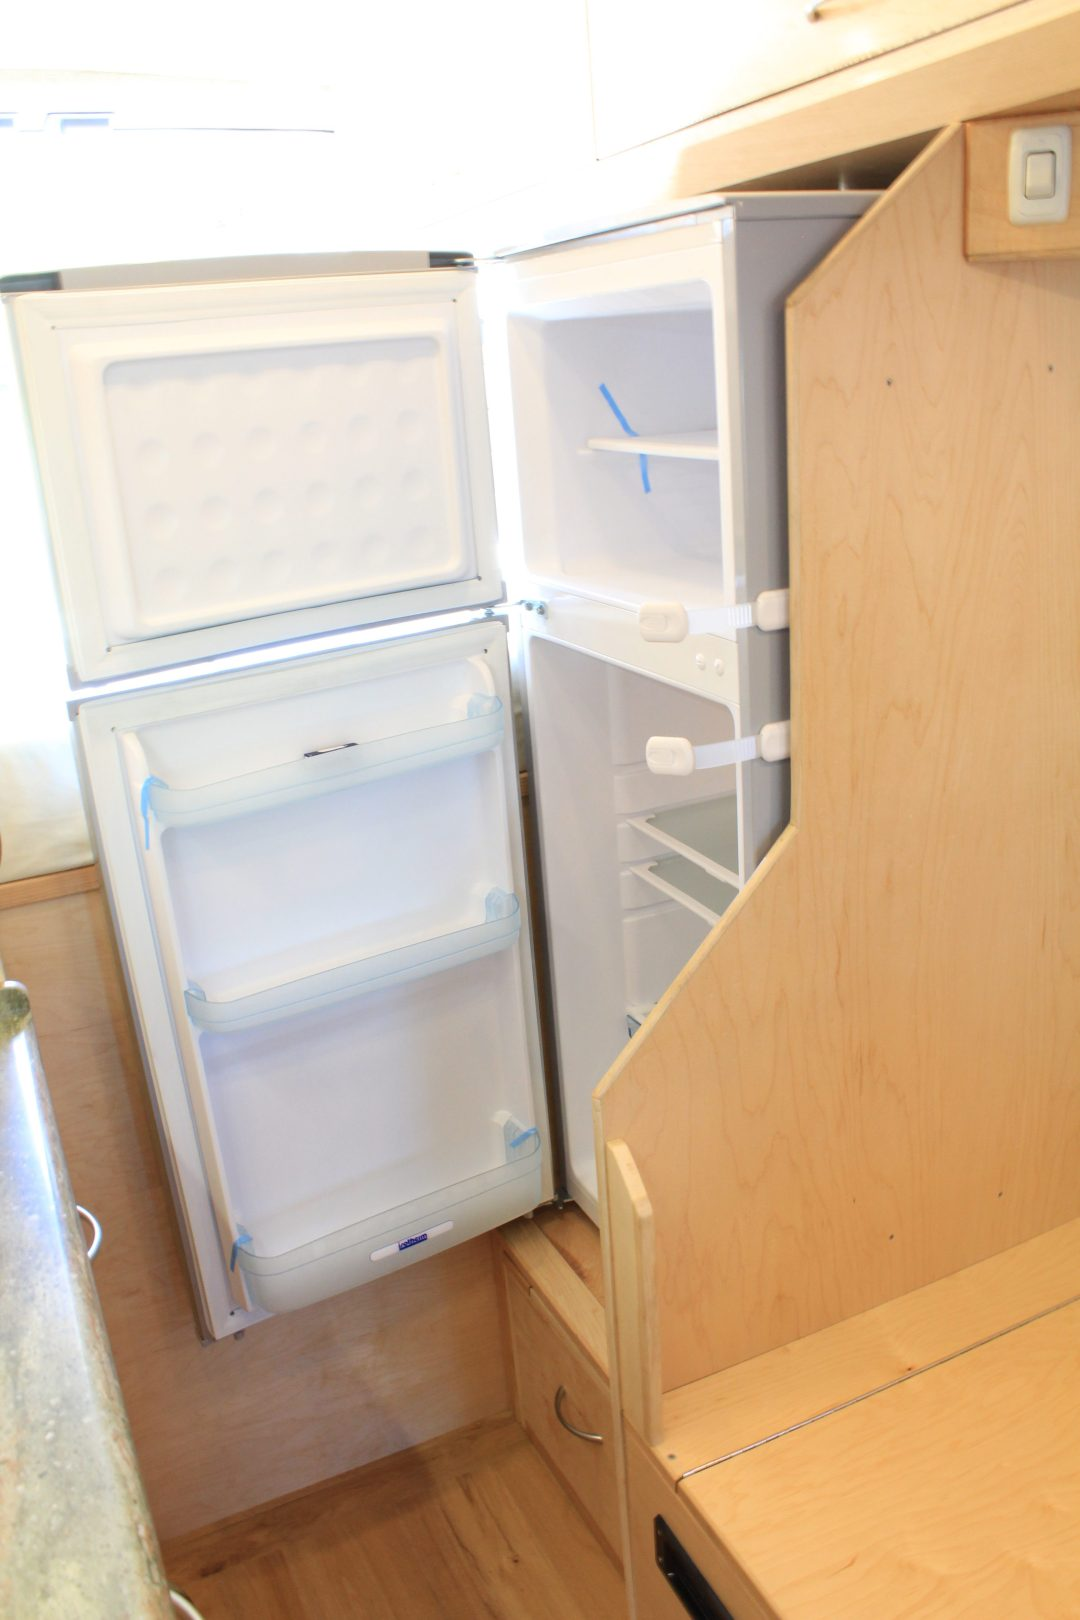 Fridge, opened, with latches to prevent opening while driving